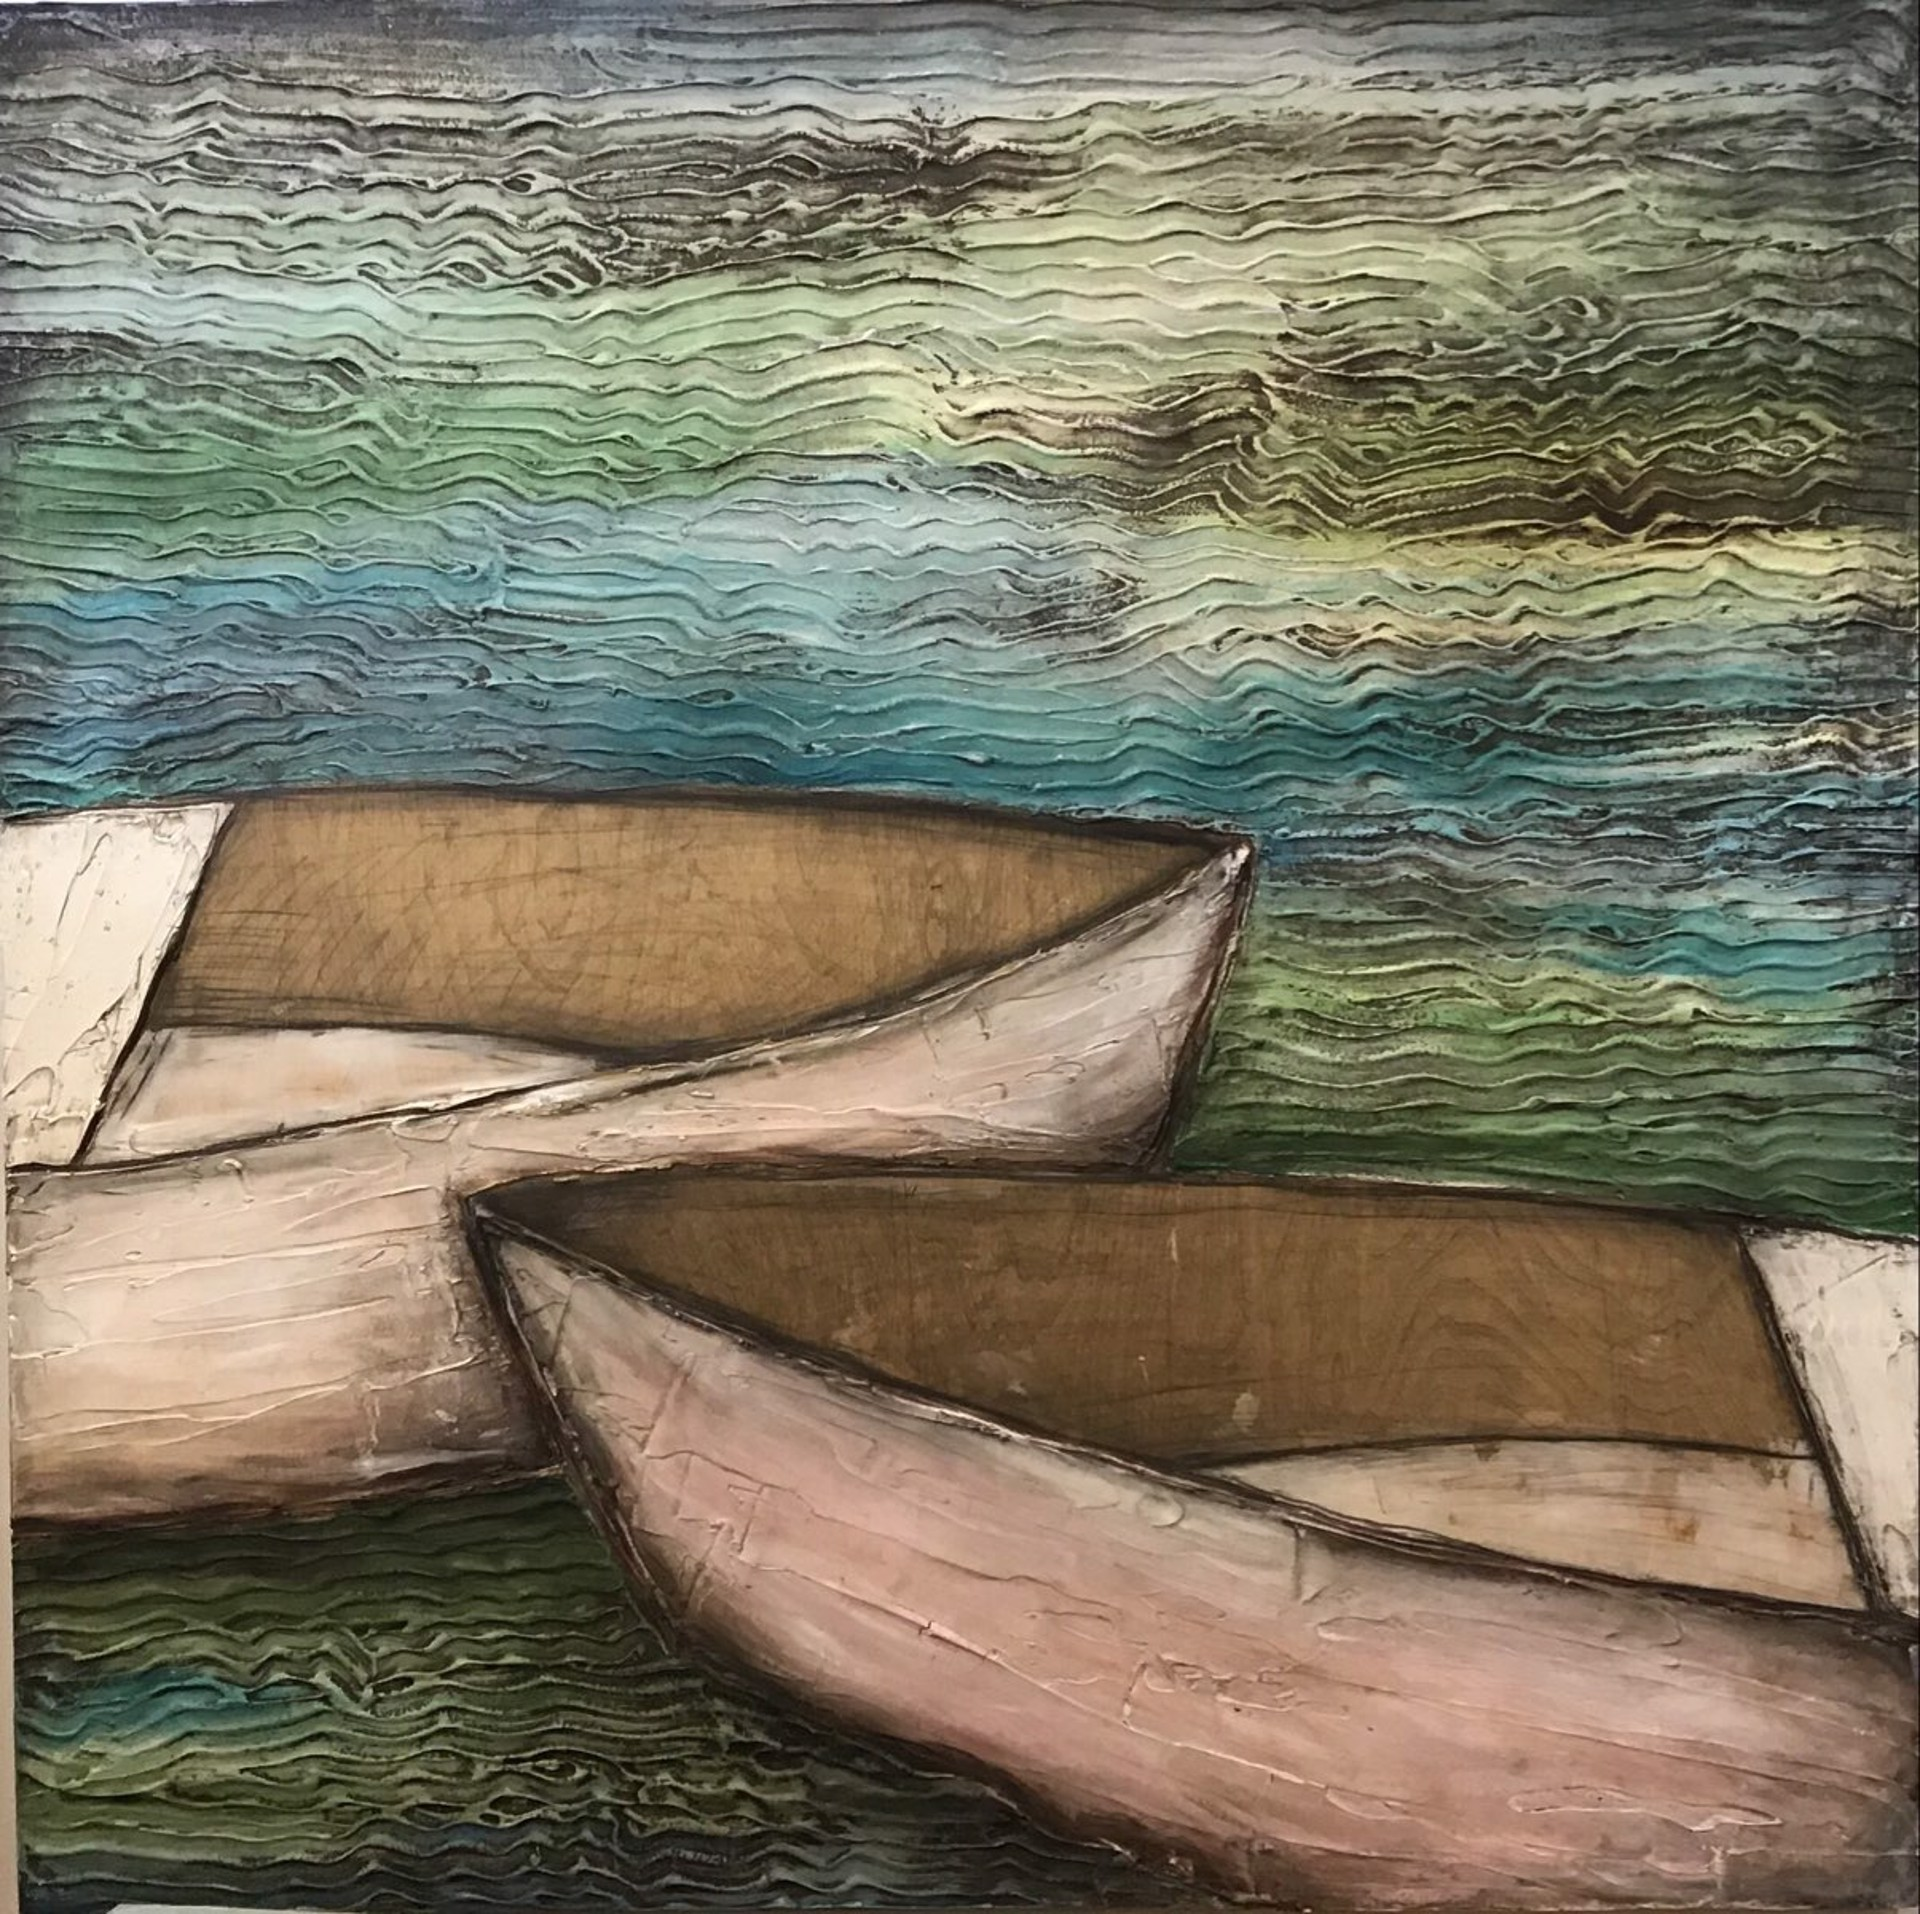 Still Water Meeting by Sherry Cook